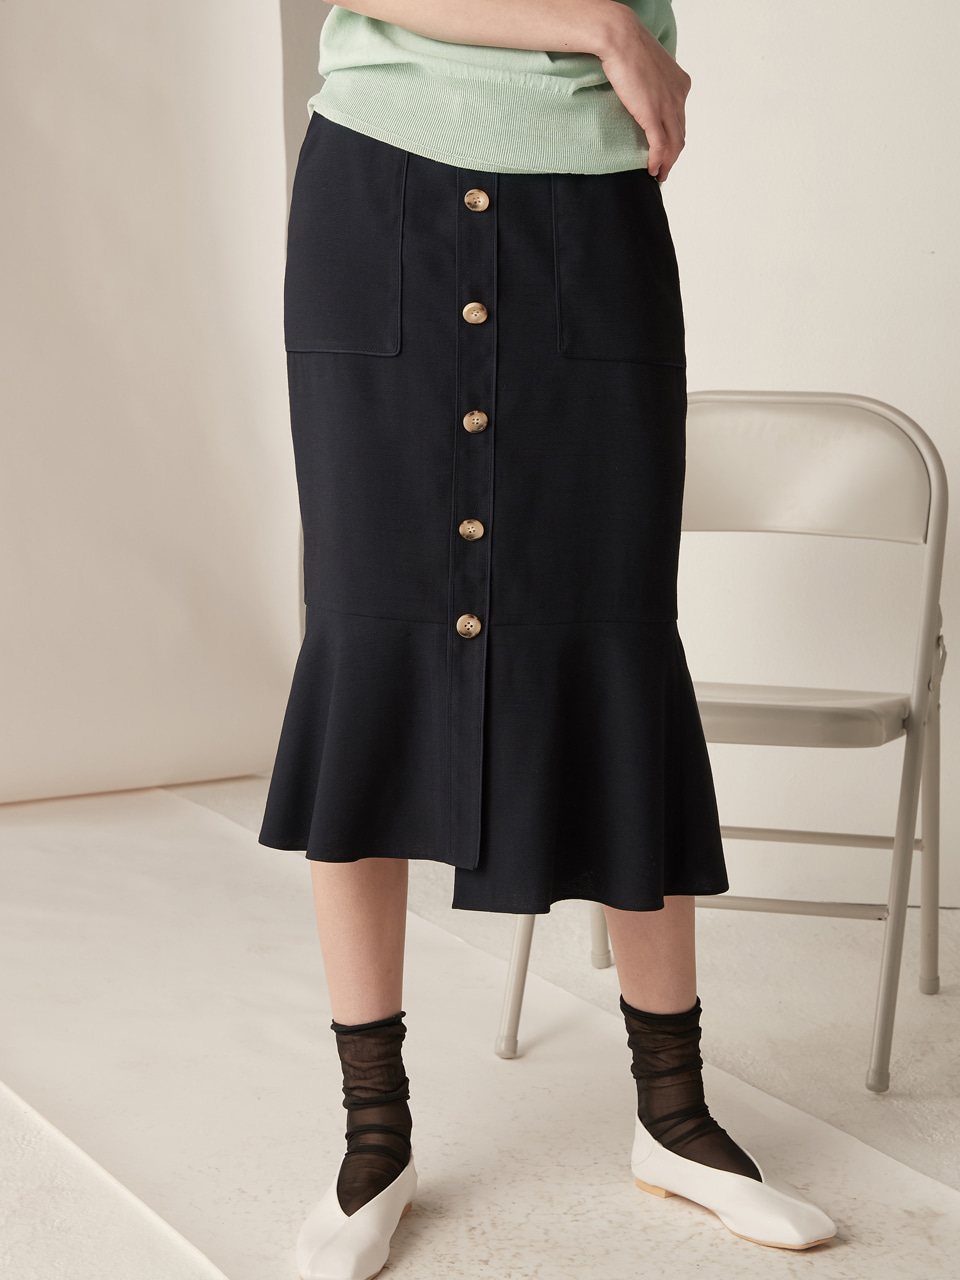 Piping mermaid skirt - navy